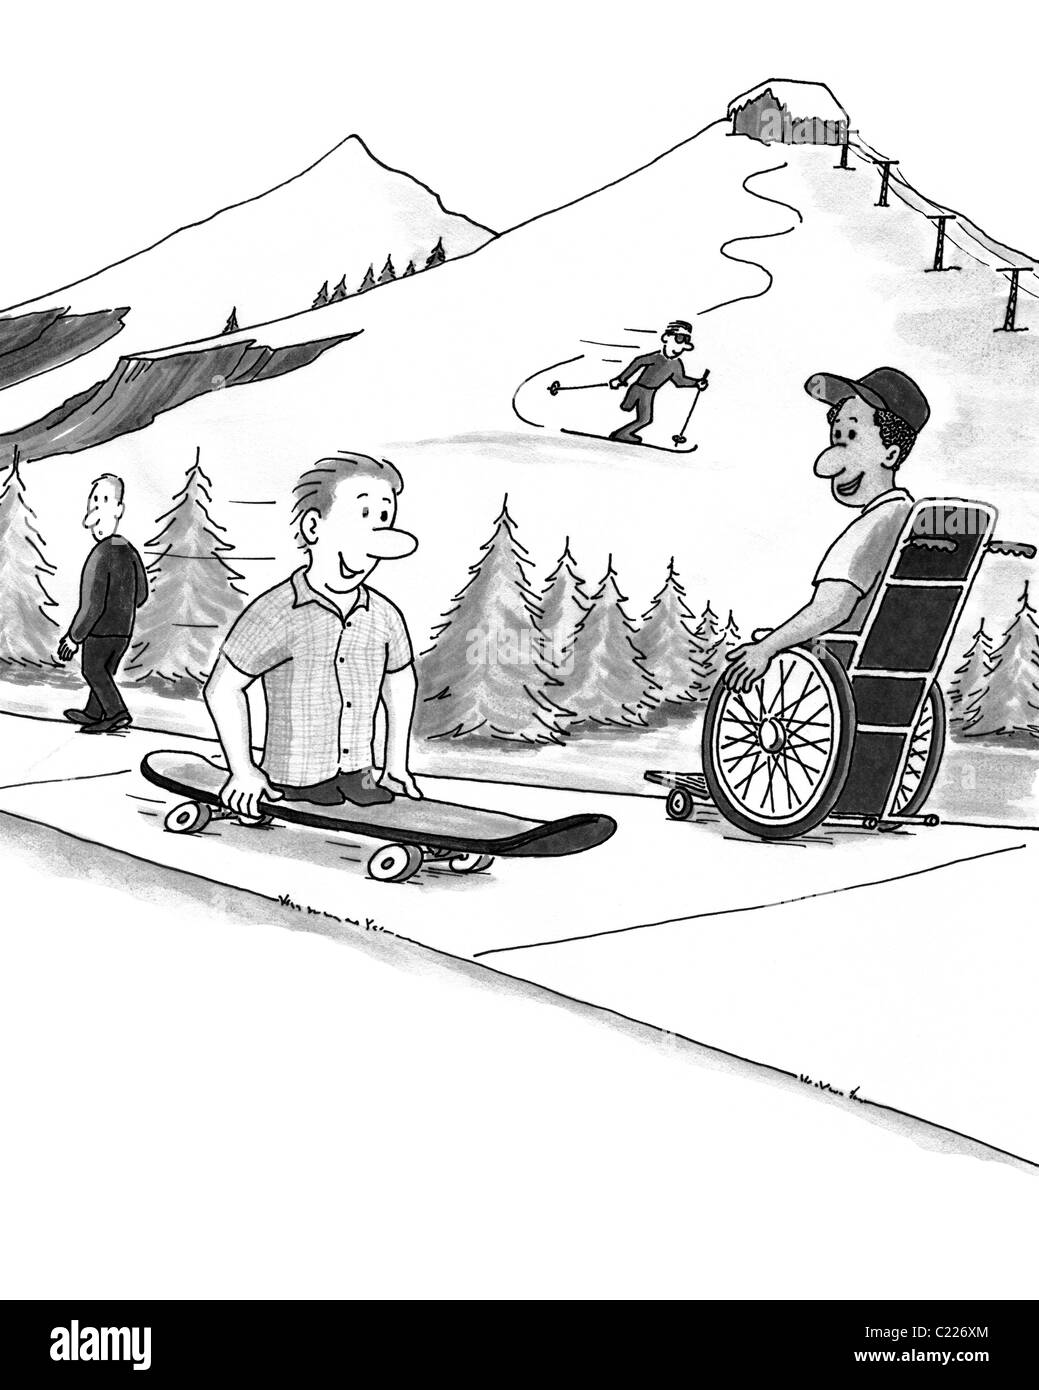 Four people at a ski resort in various states of abilities and disabilities enjoying activities. Some people some - Stock Image